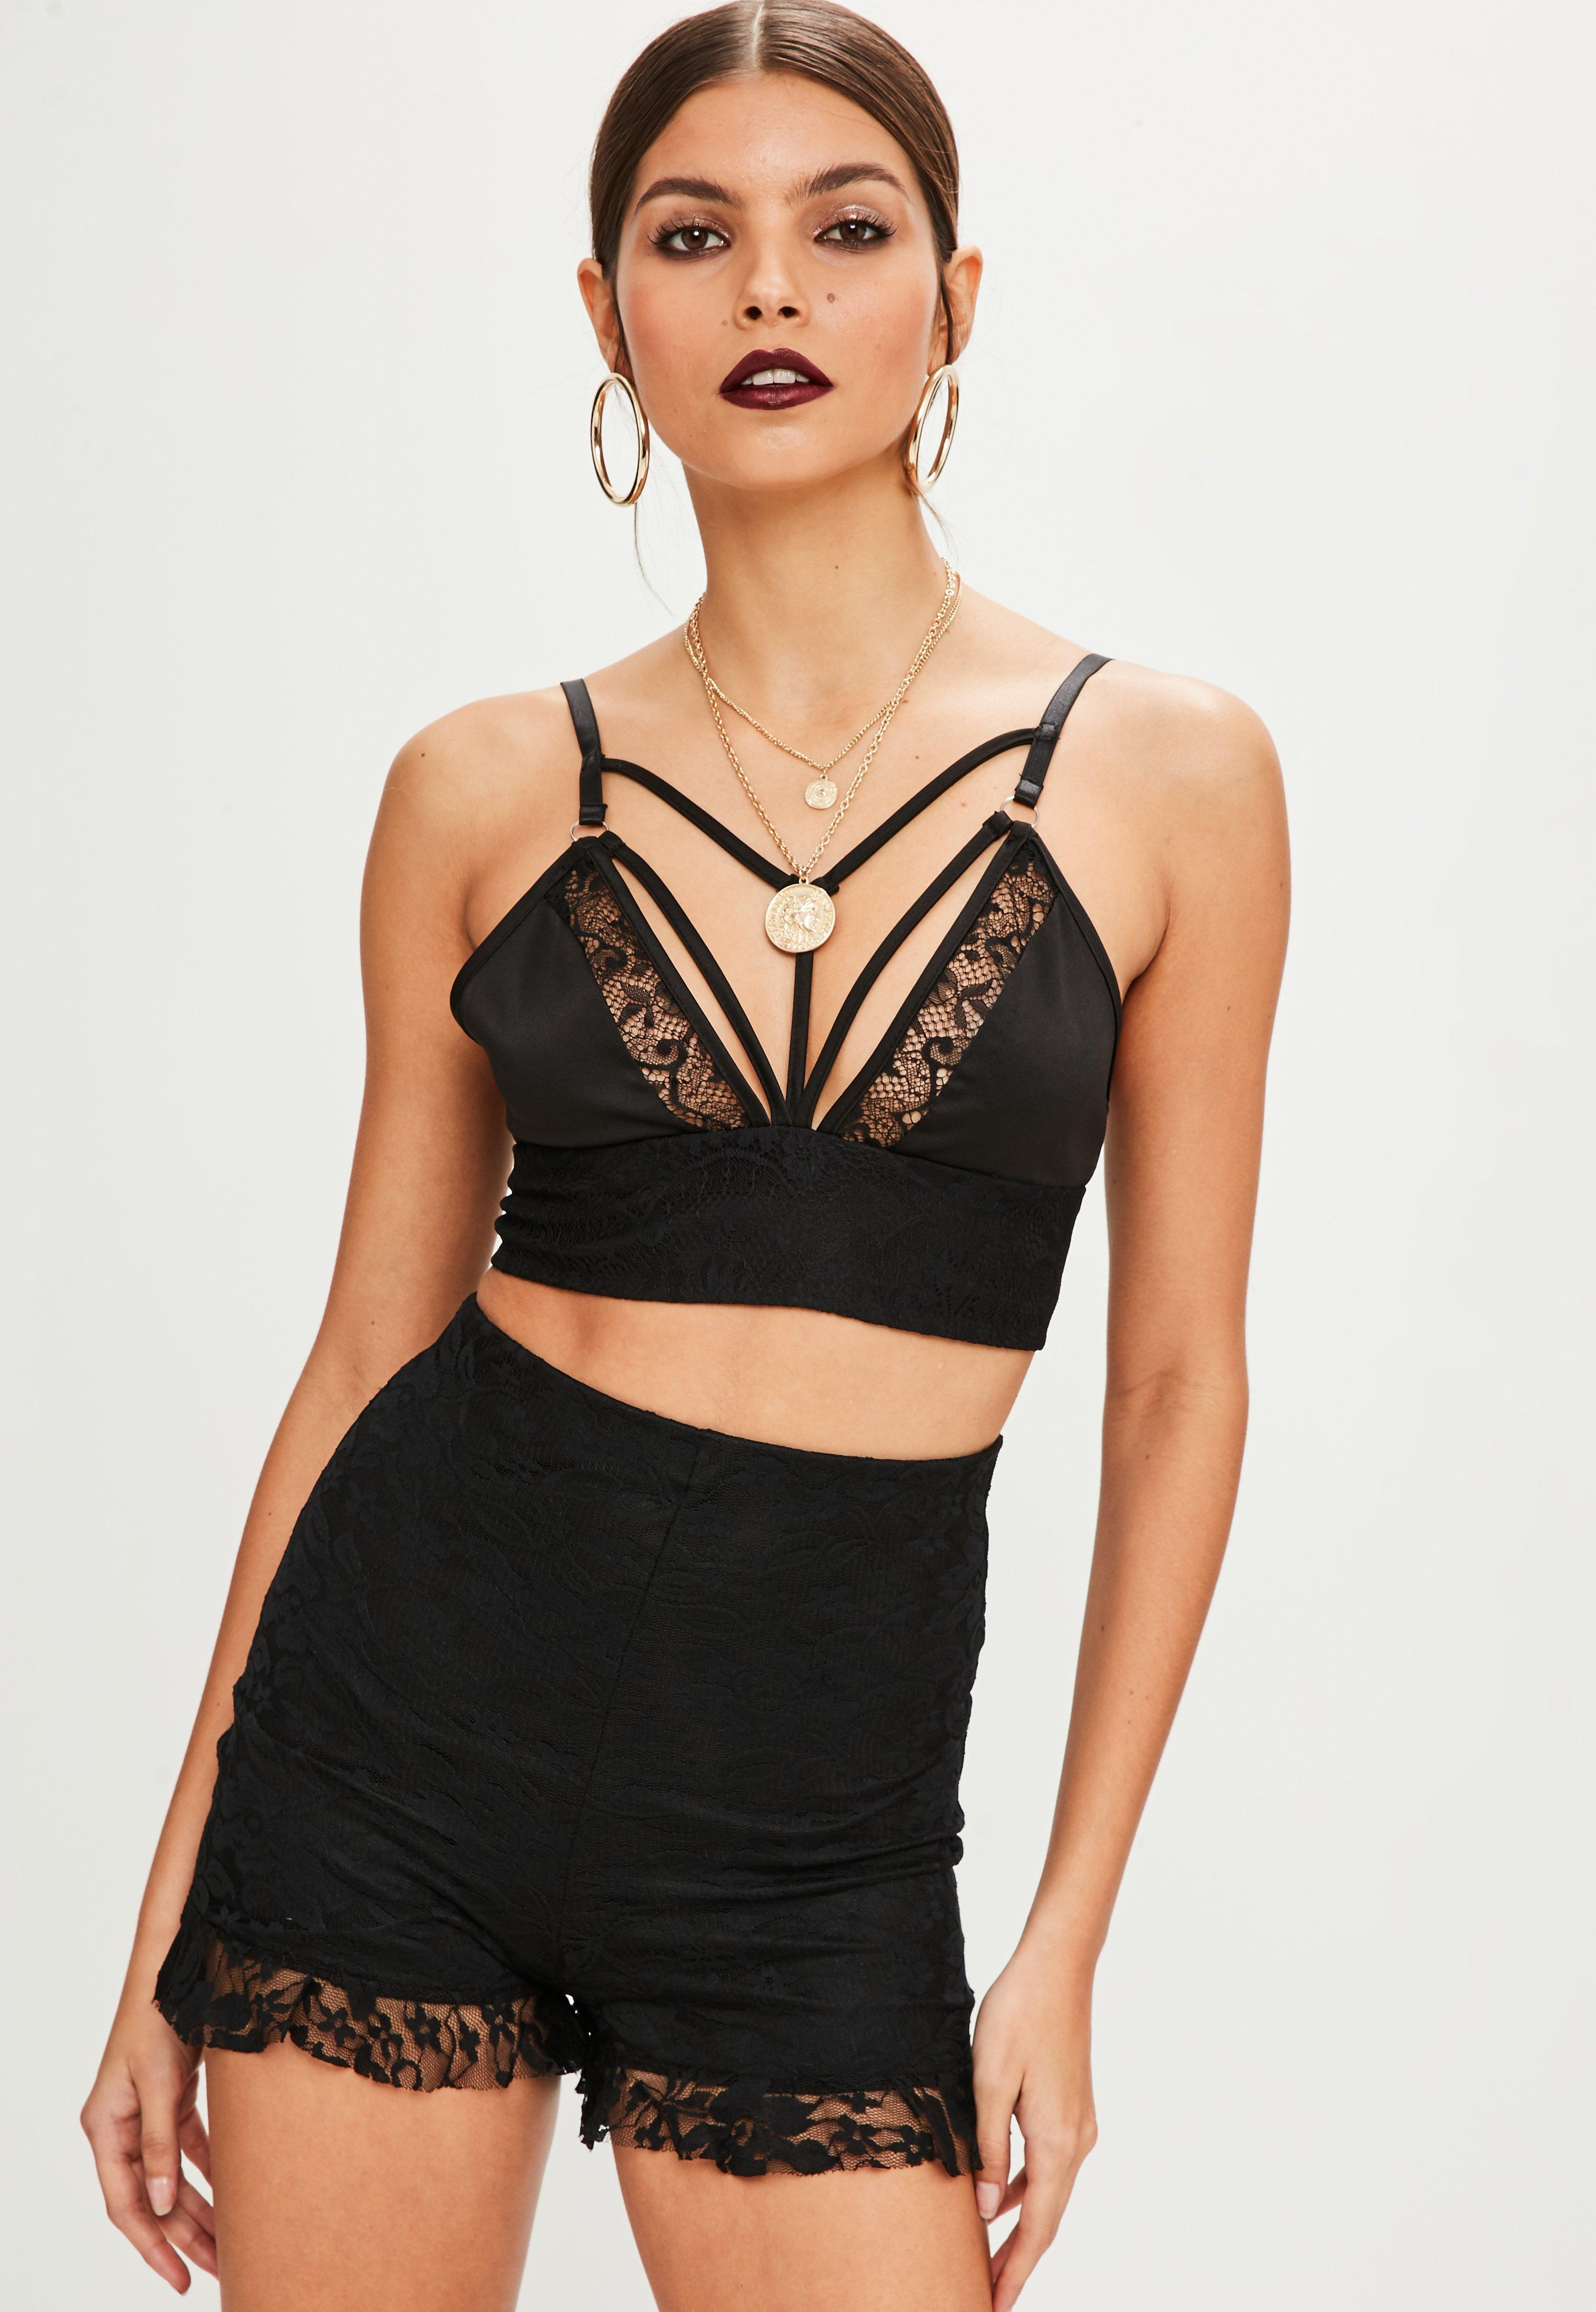 d5892901ba Lyst - Missguided Tall Black Harness Lace Bralette in Black - Save 53%